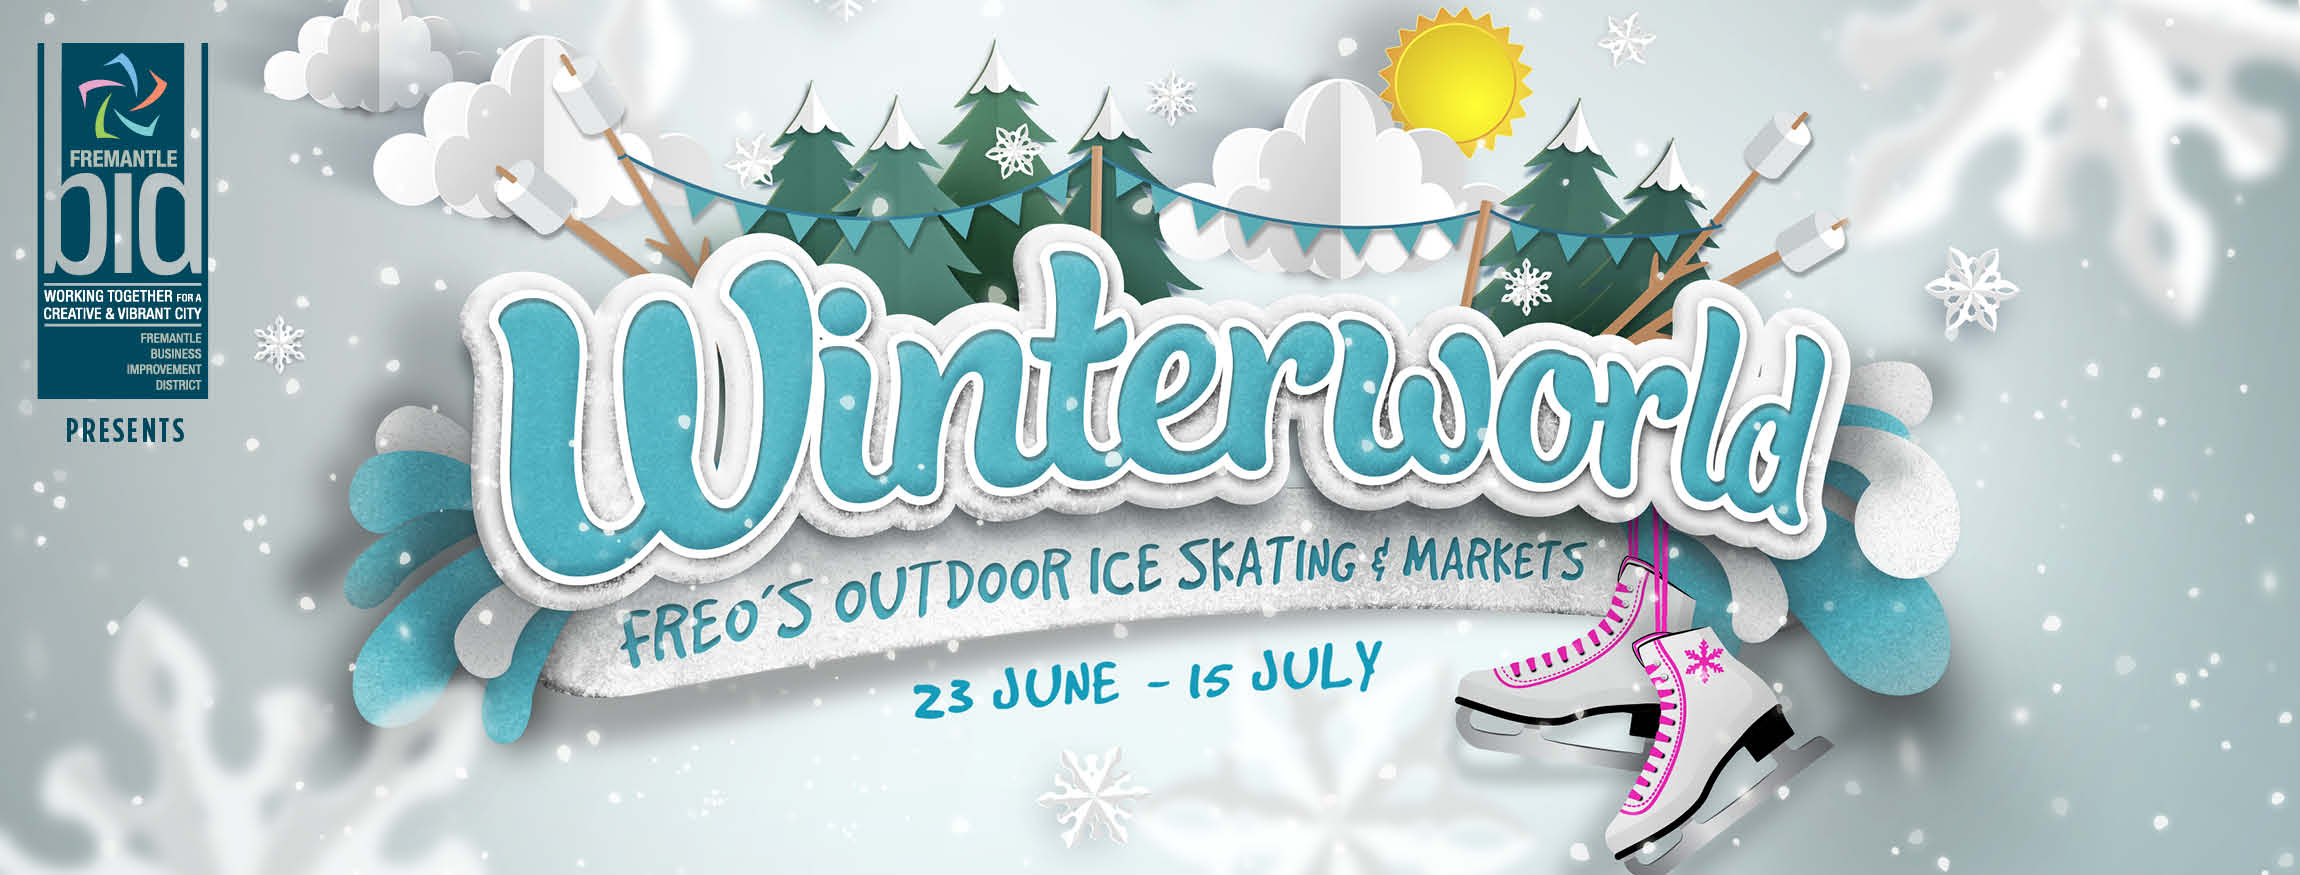 Find tickets from WINTER WORLD (Aust) PTY LTD